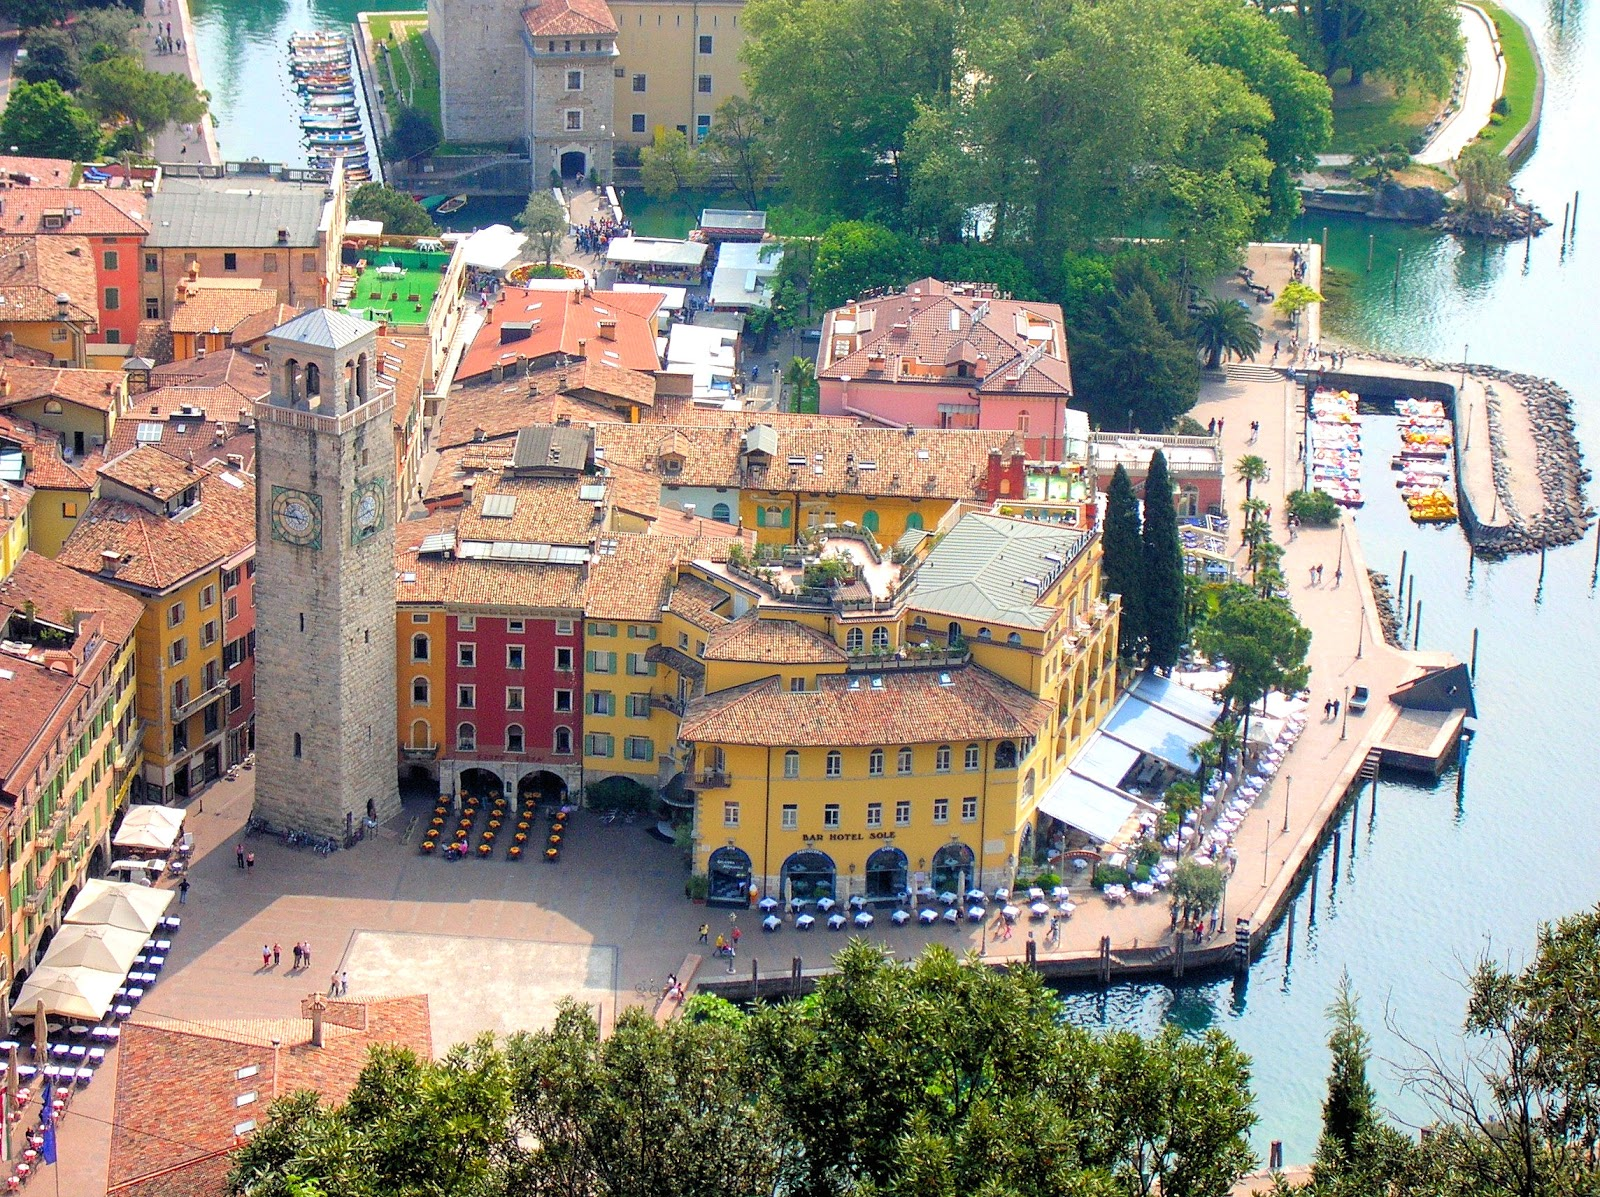 Riva Del Garda Italy  City pictures : Riva del Garda or Riva is the northernmost village on Lake Garda and ...